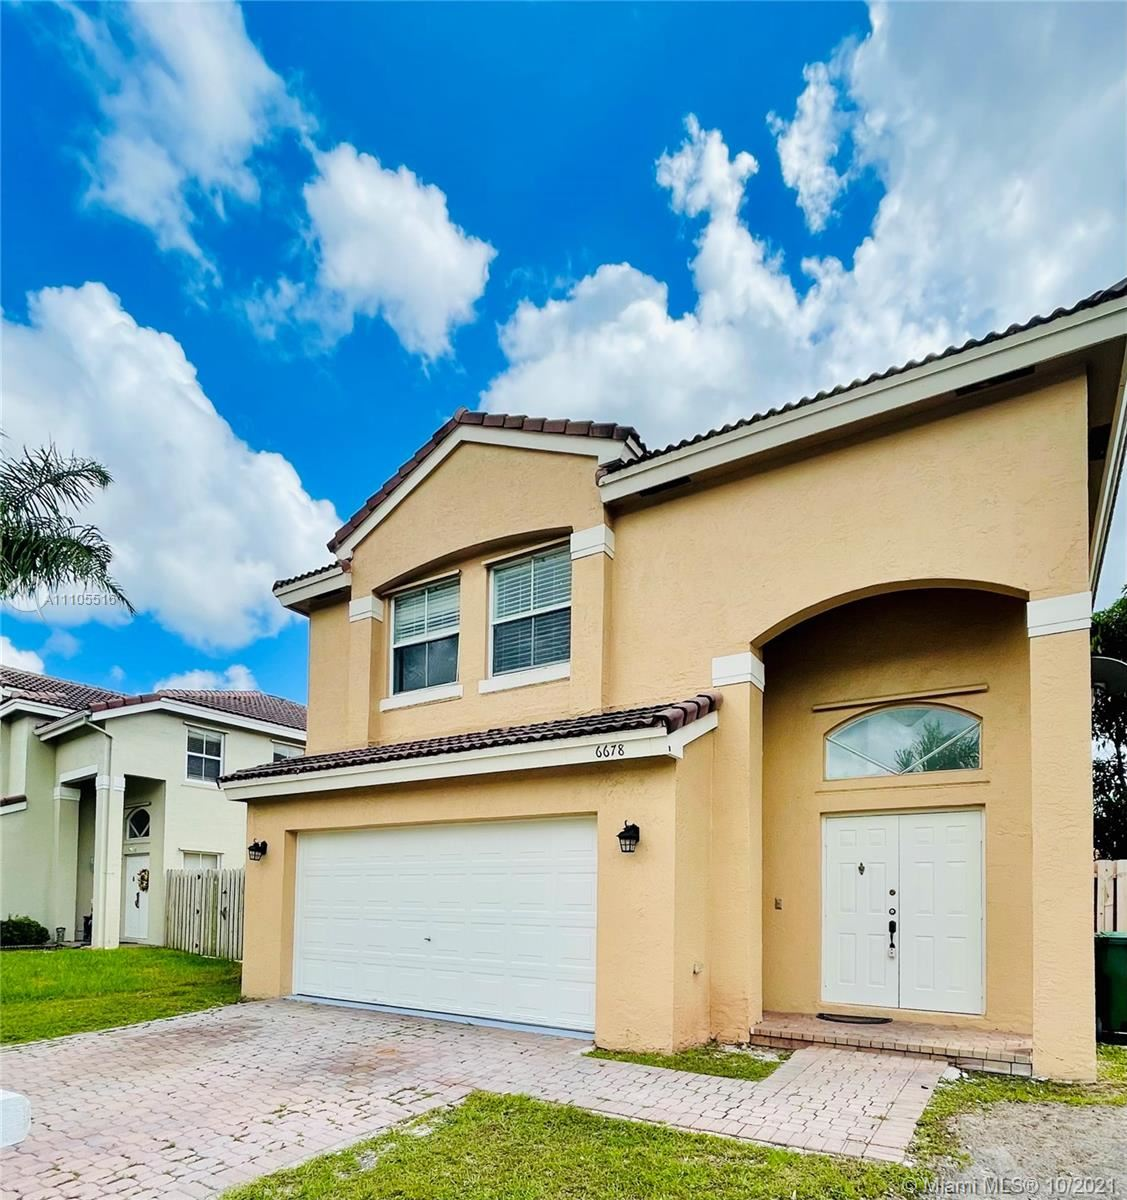 6678 Saltaire Ter, Margate, FL 33063 - #: A11105516